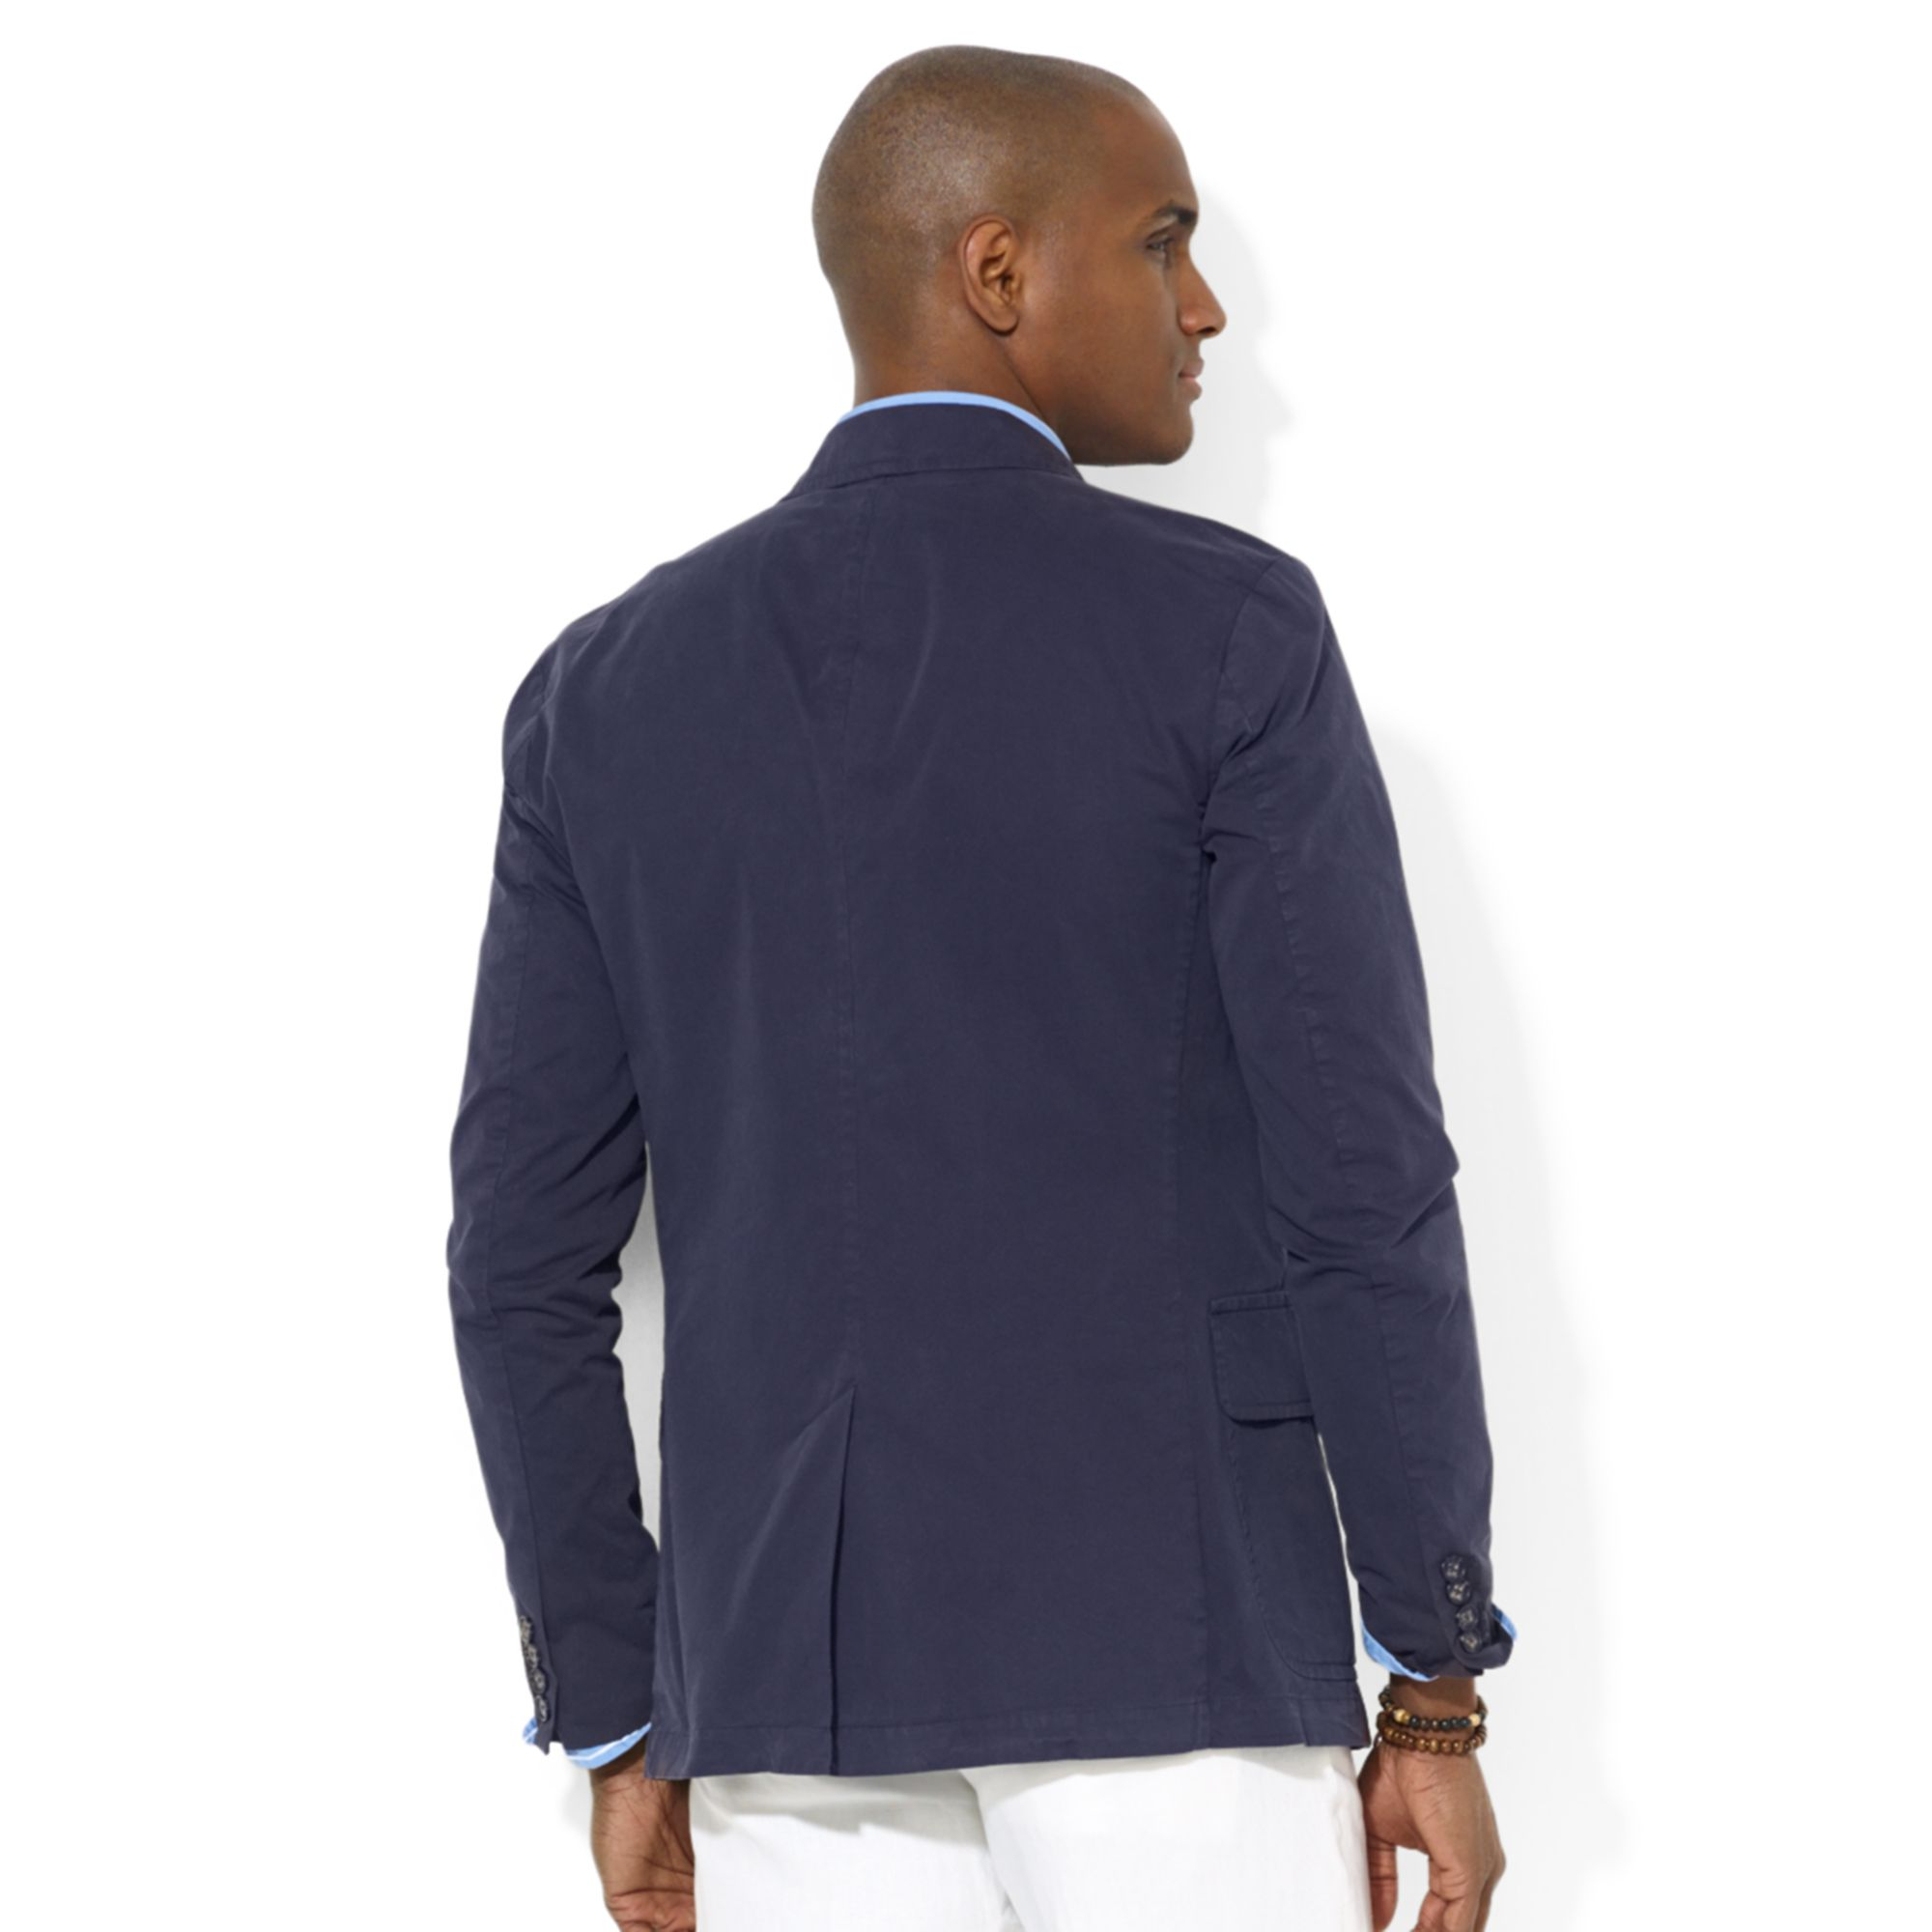 ralph lauren polo hampton chino sport coat in blue for men lyst. Black Bedroom Furniture Sets. Home Design Ideas